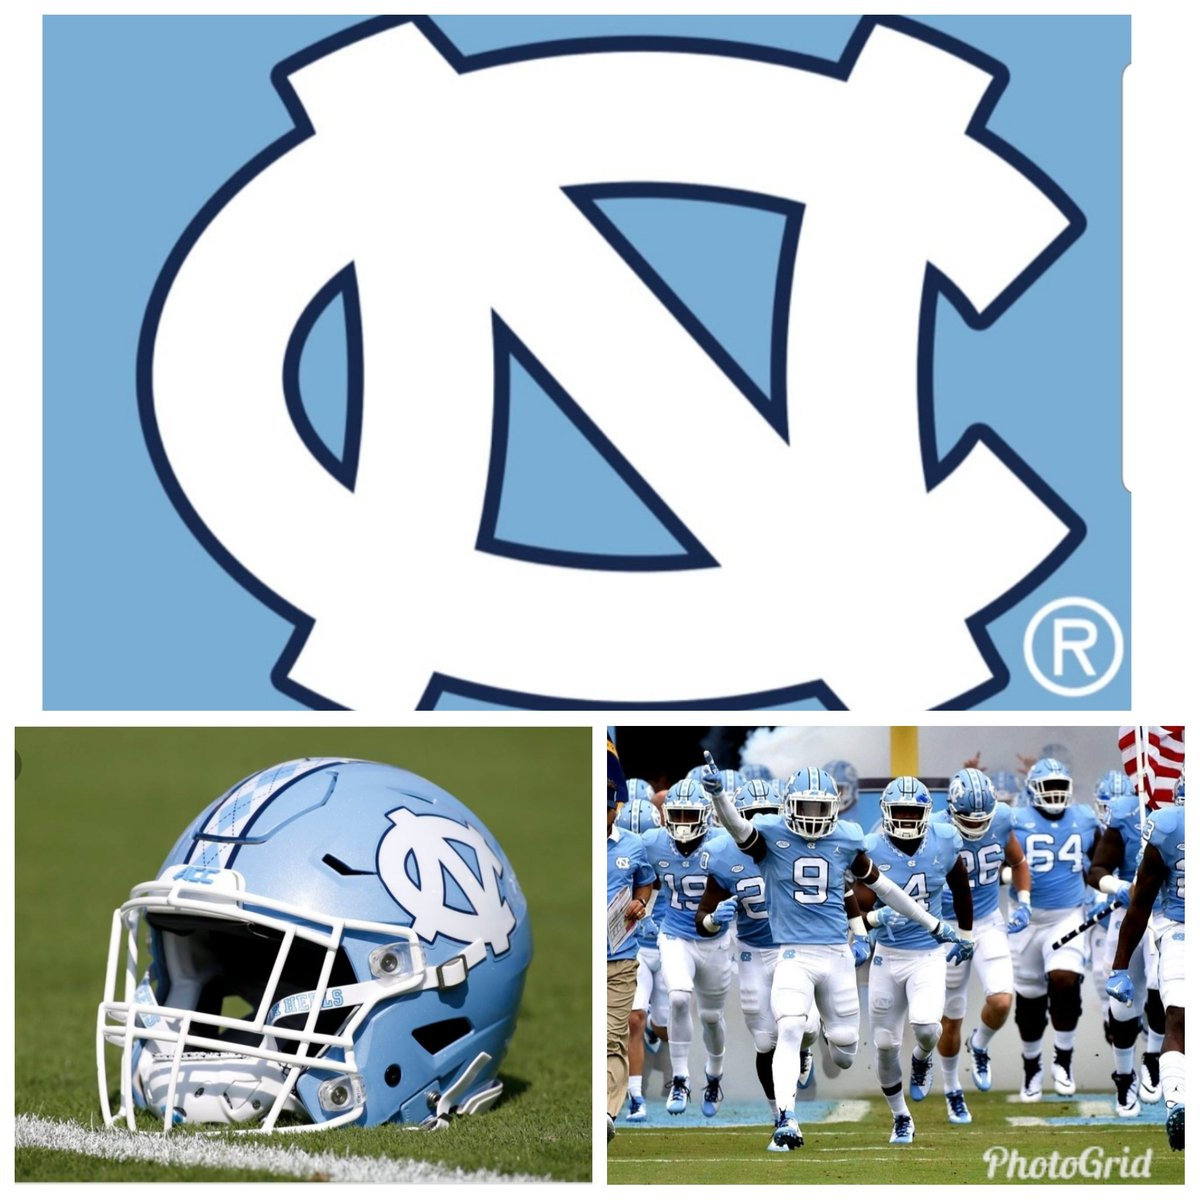 Blessed and honored to say I have EARNED an offer from The University of North Carolina #GDTBATH #UNC @DonCallahanIC @RivalsFriedman @CoachMackBrown @UNCCoachG @warriordad4<br>http://pic.twitter.com/4R8EQdSeTf